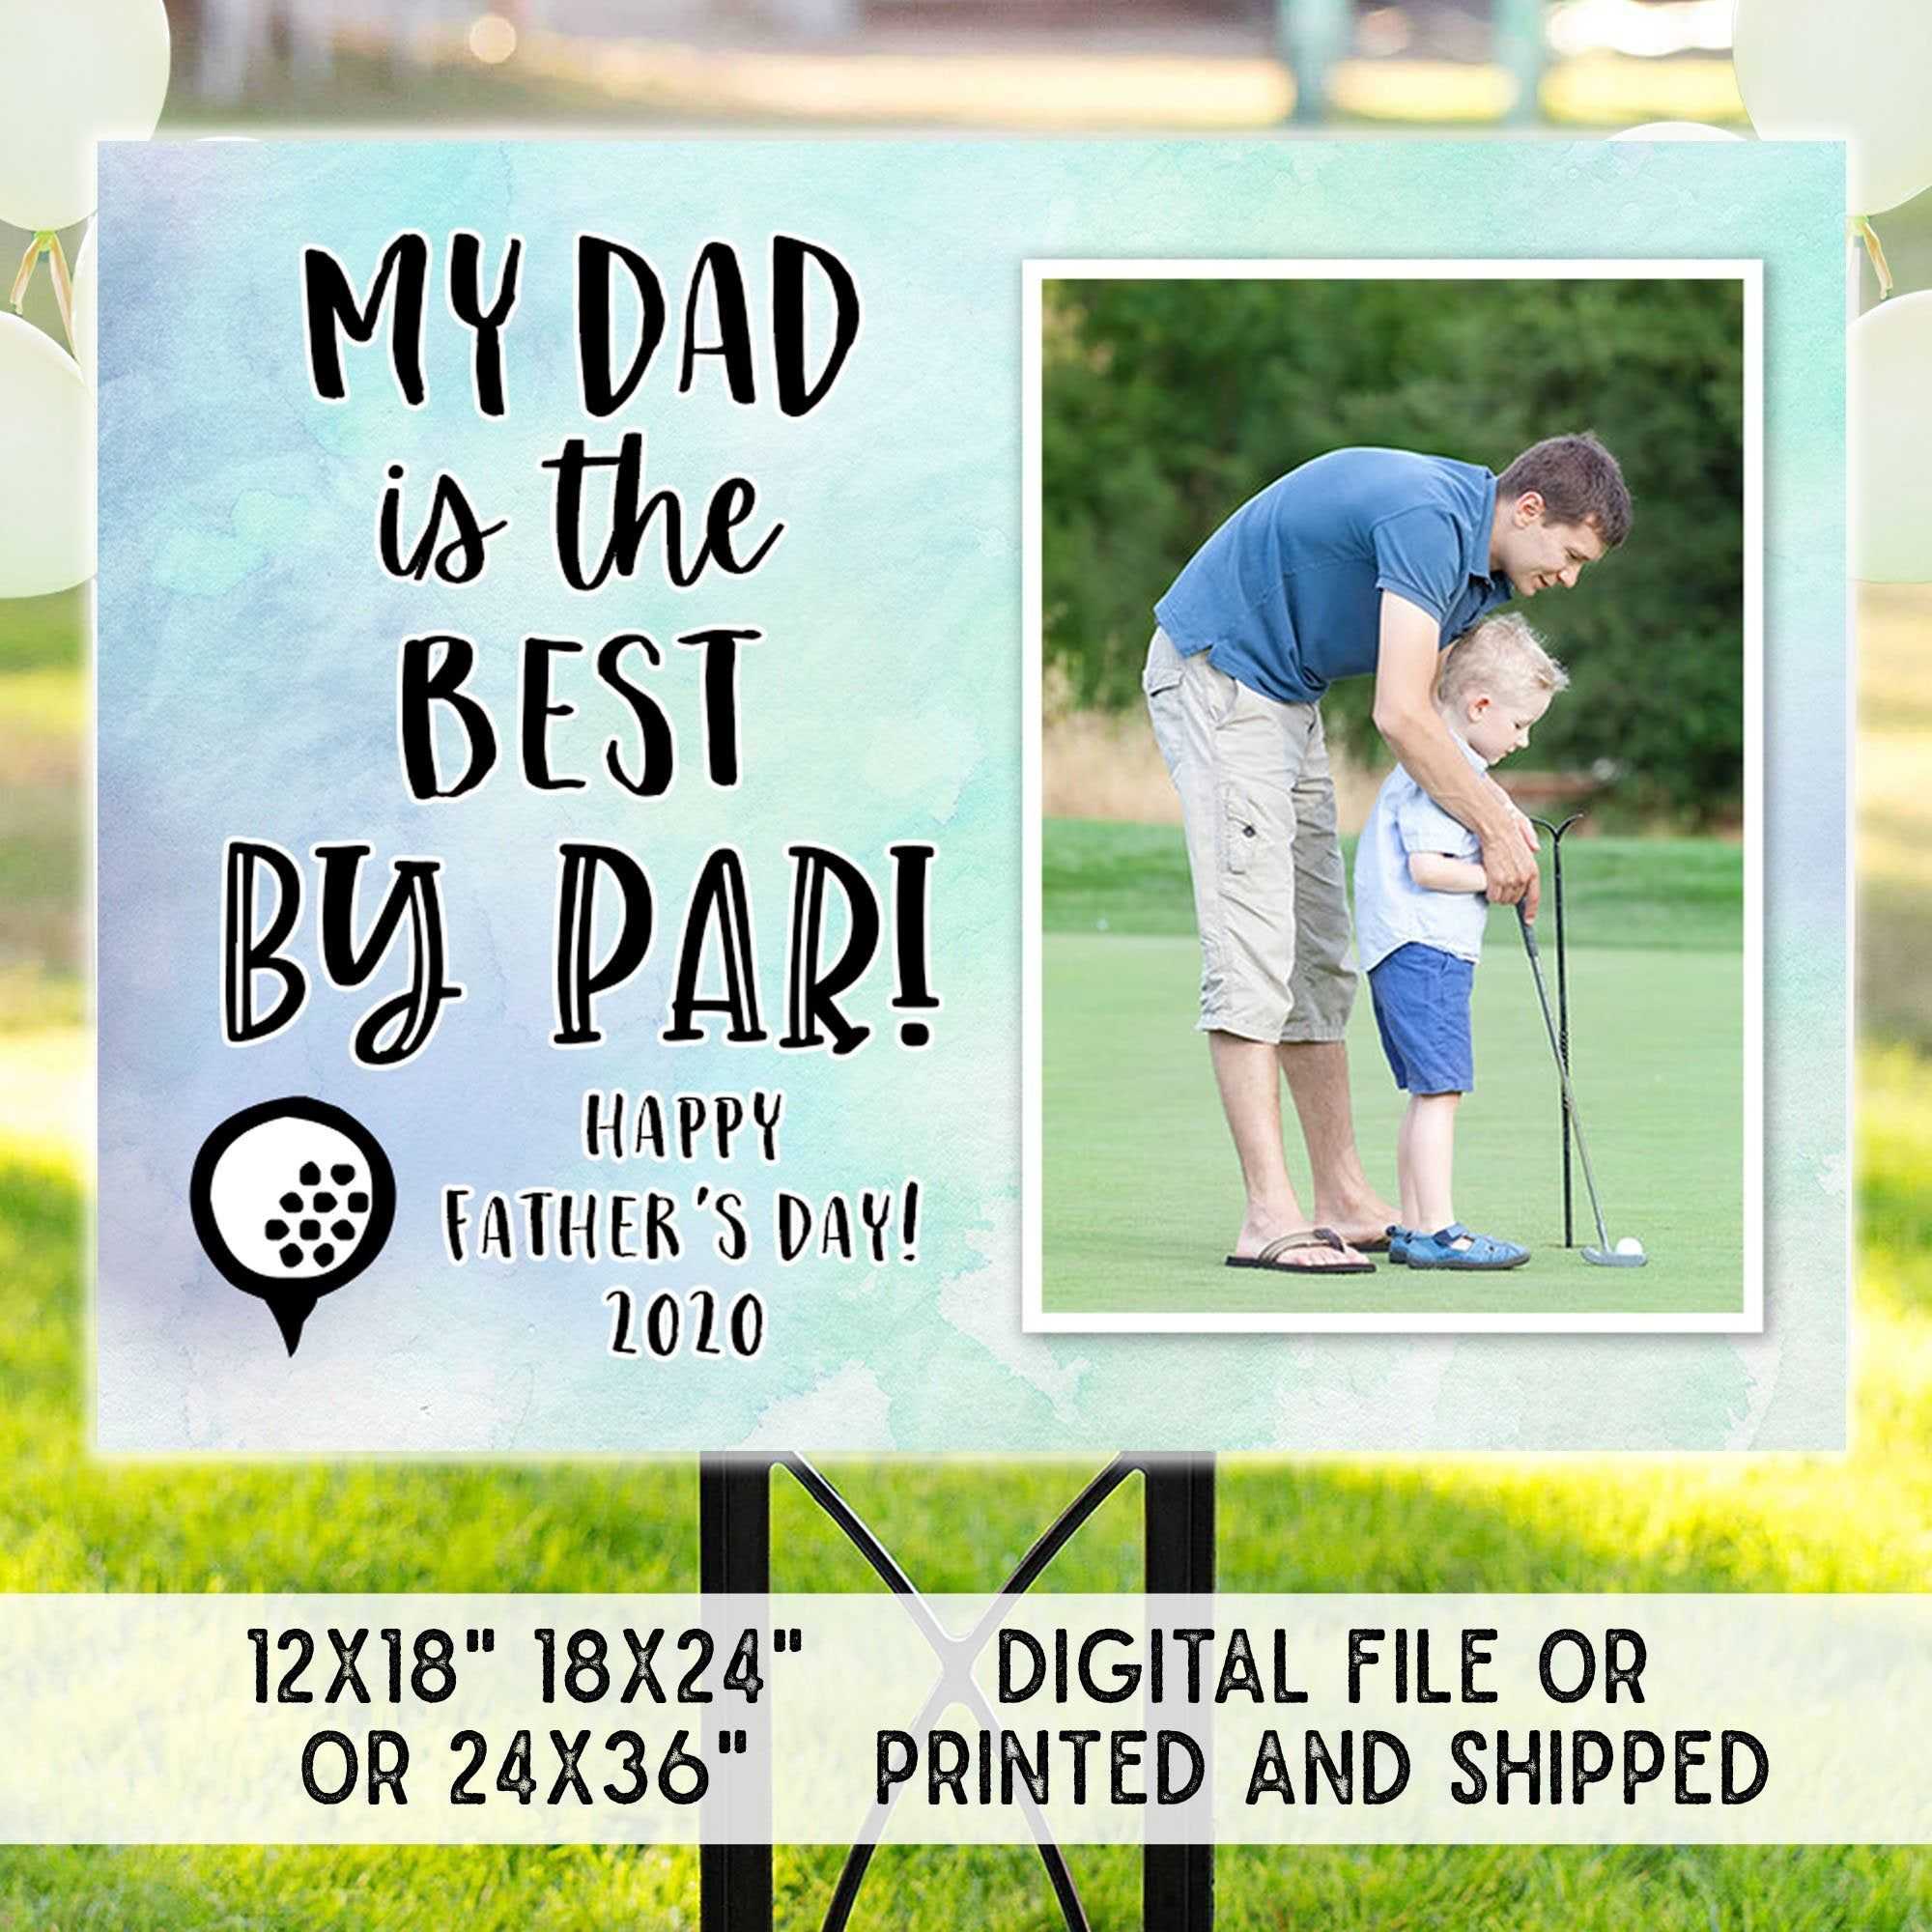 Pin on Father's Day Gift Ideas